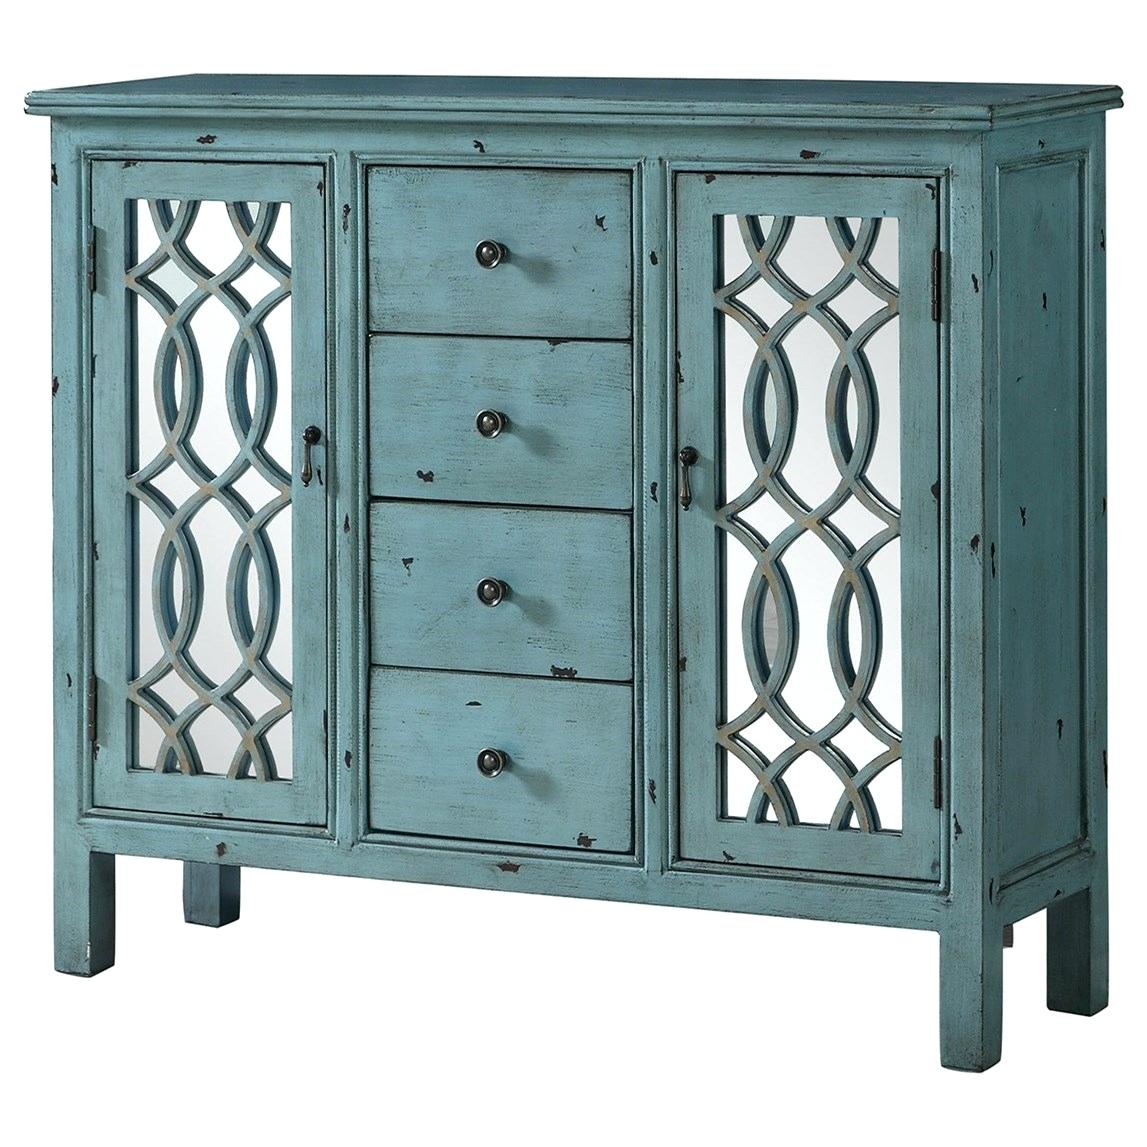 blue accent table teal storage end light coaster cabinets antique with inlay door design fine furniture navy outdoor side modern black lamp patio umbrella hole west elm floor